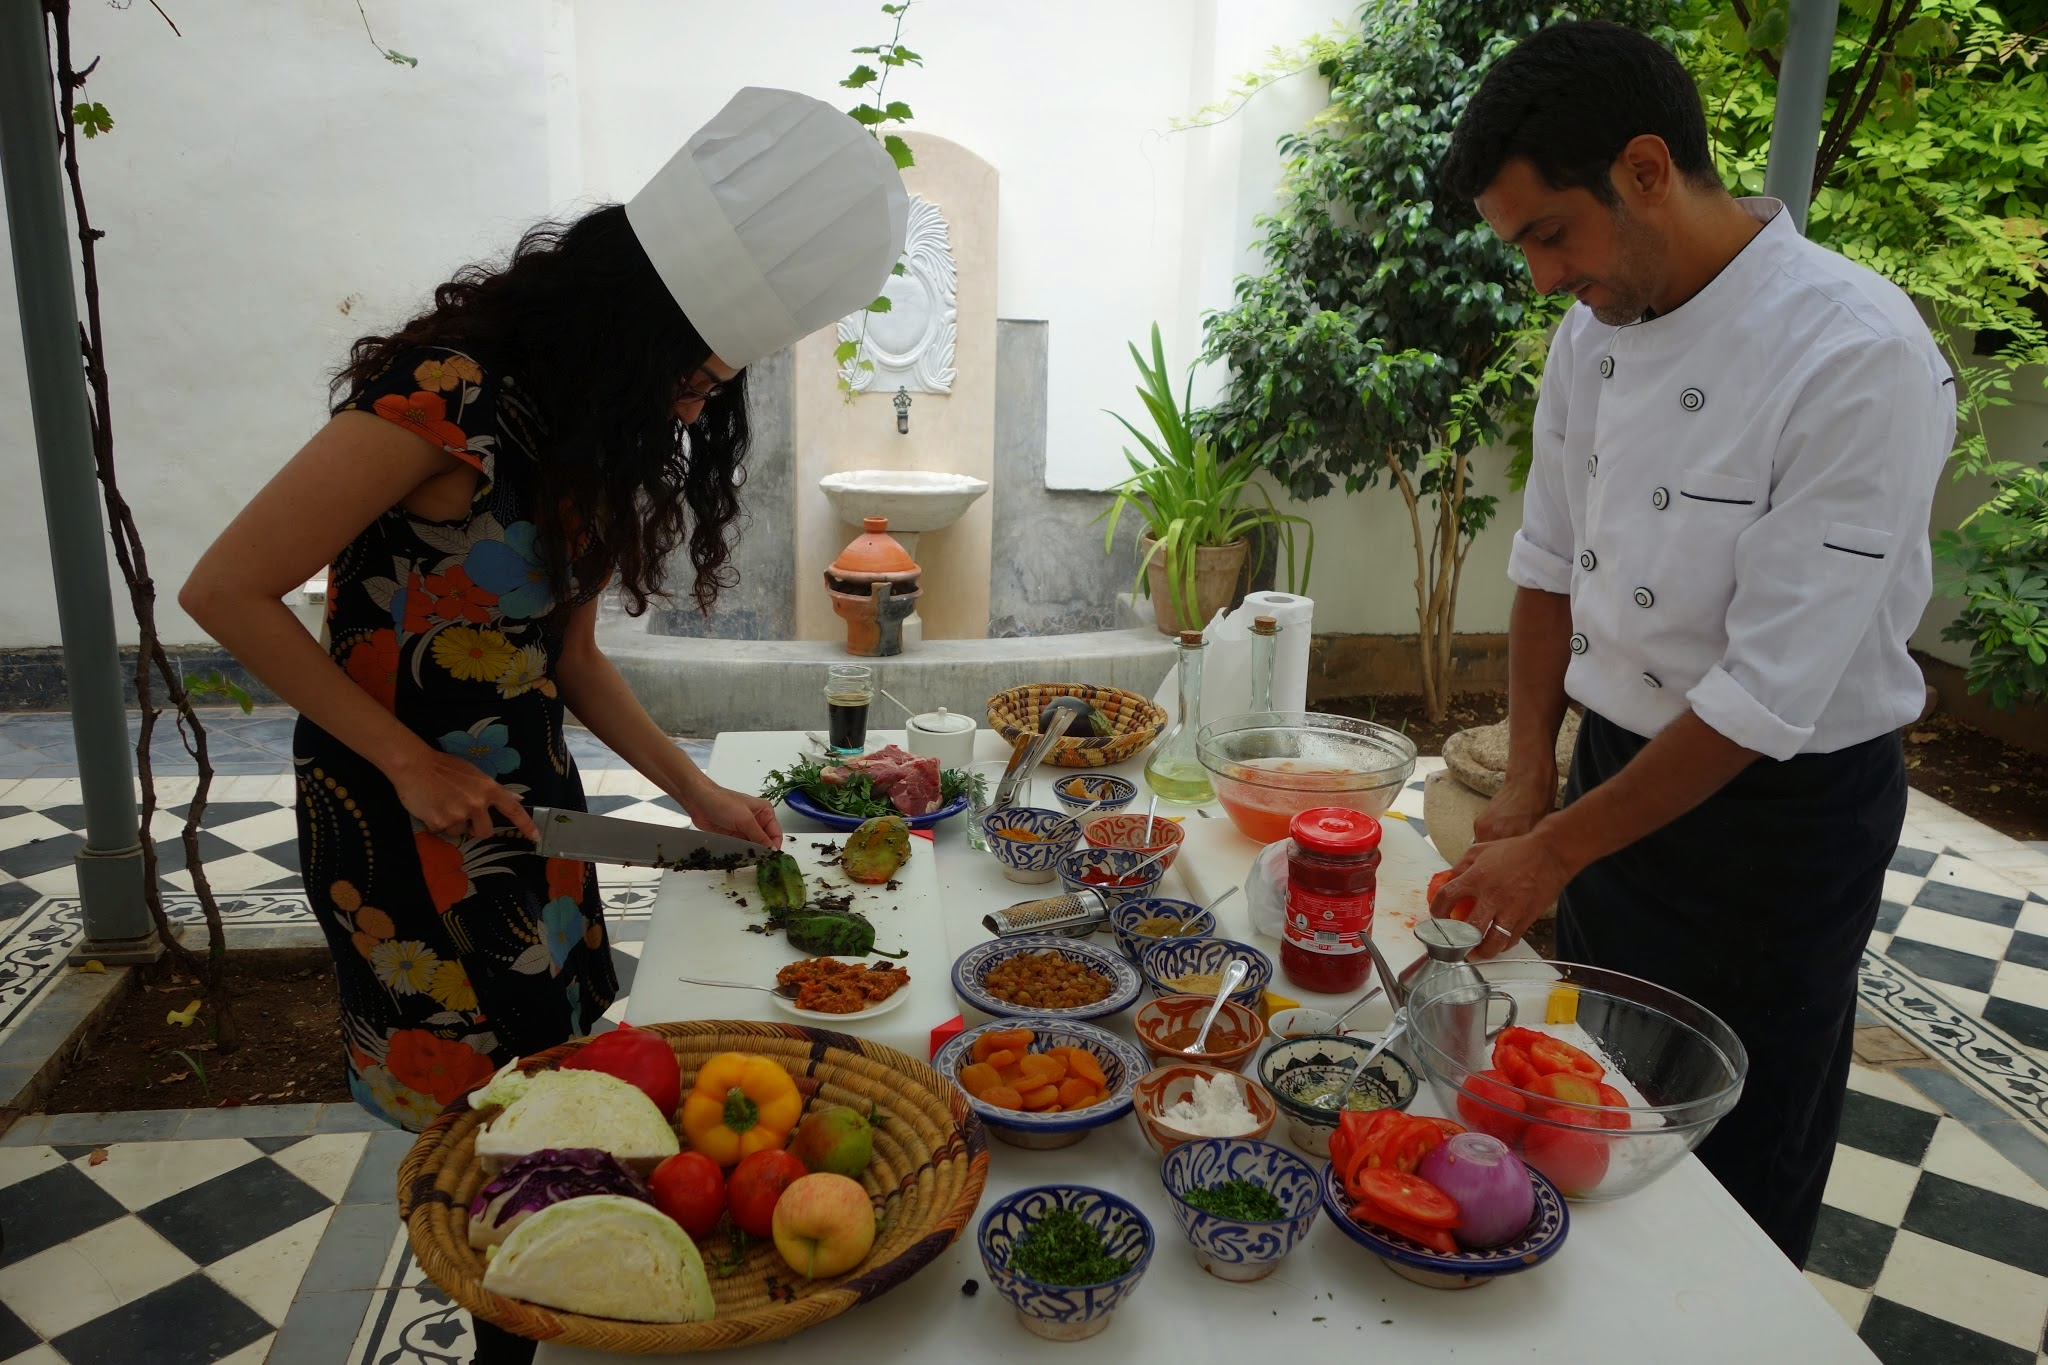 A cooking class in Marrakech can introduce you to the fundamentals of Moroccan cuisine.